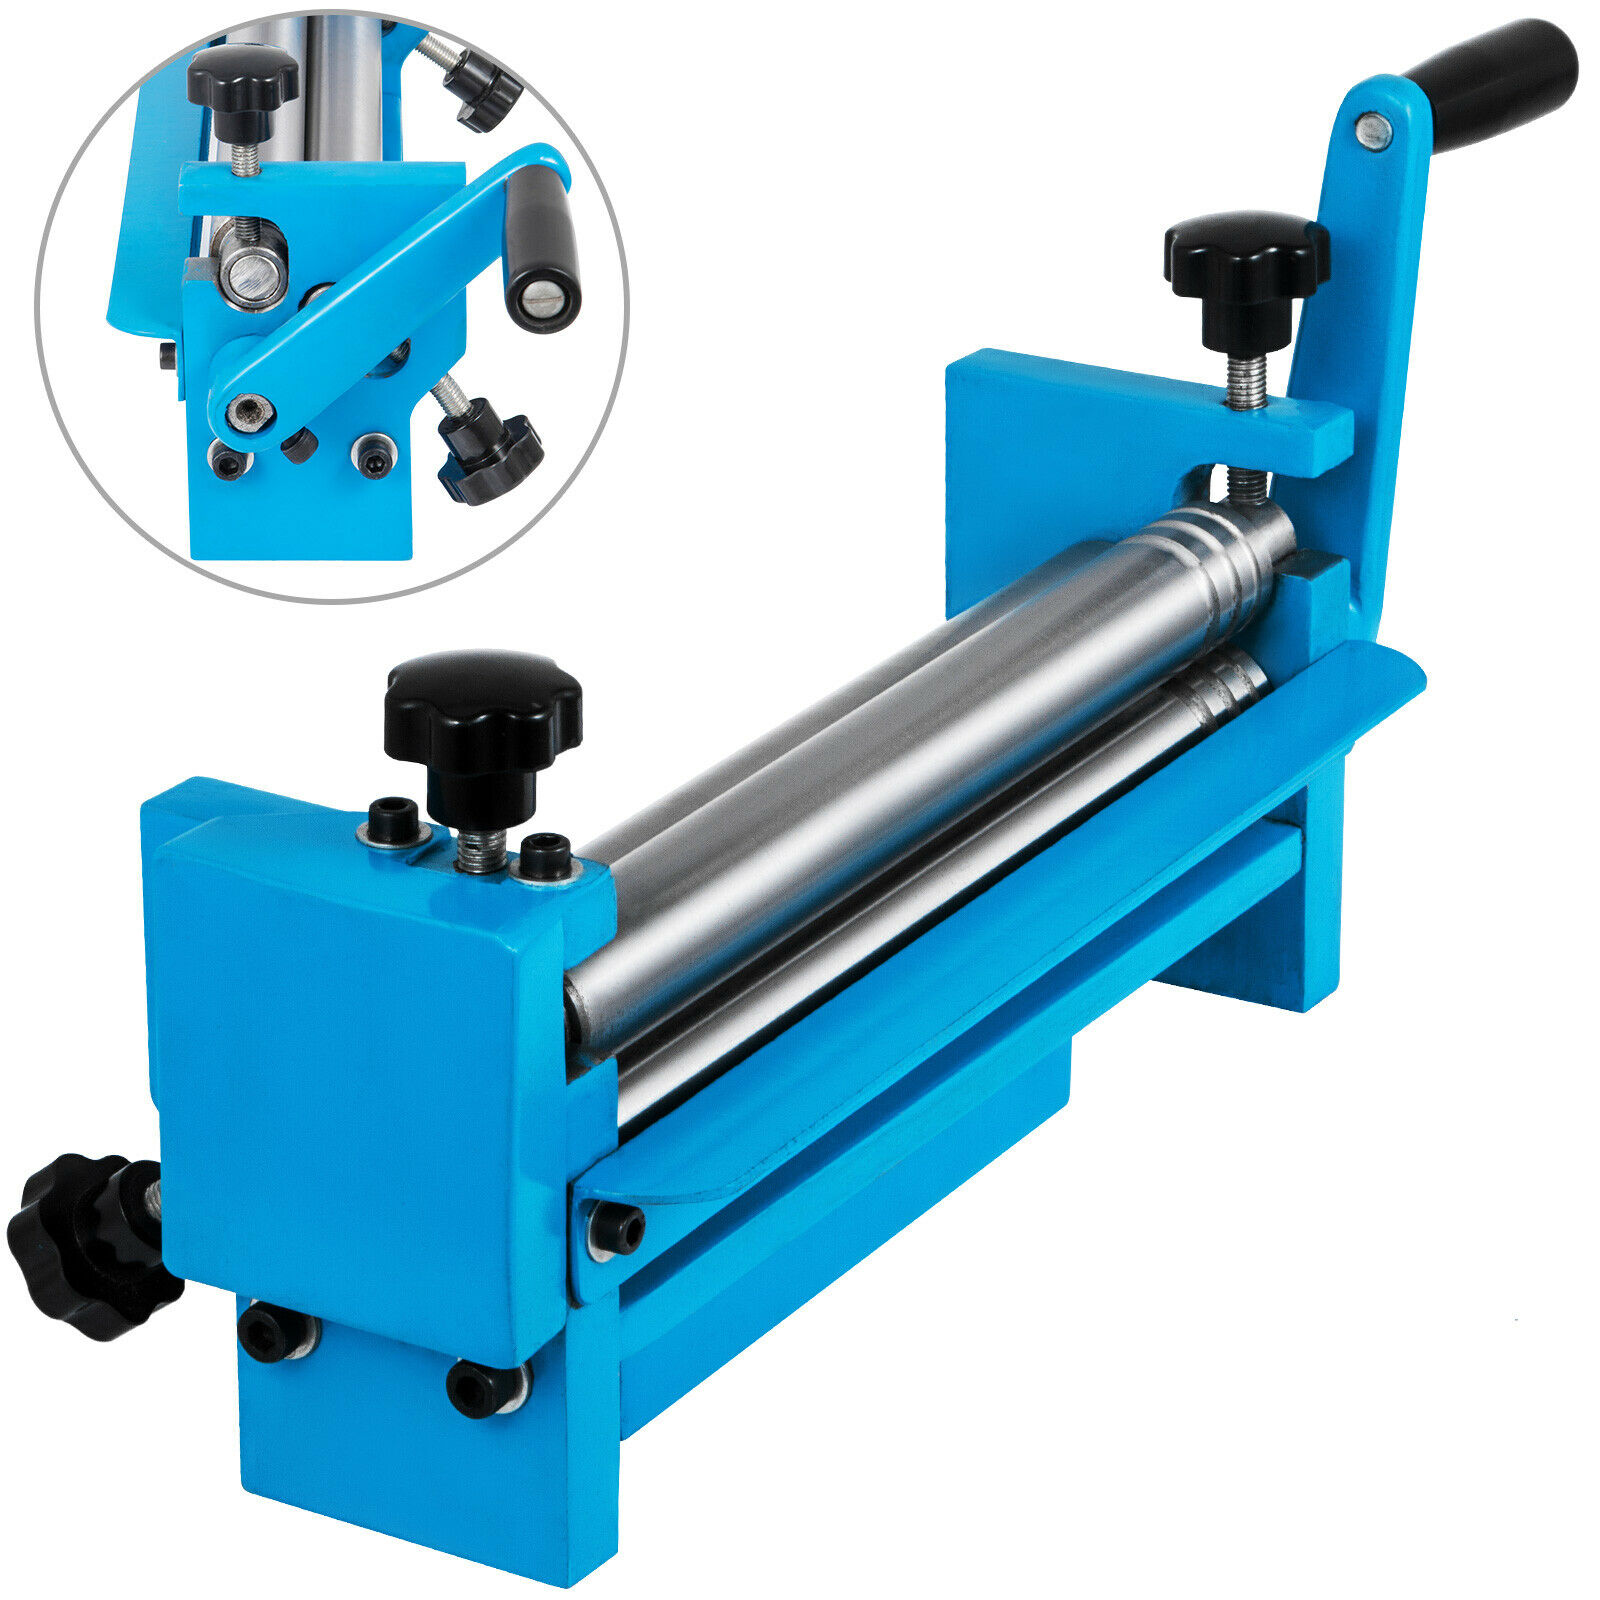 NEW STYLE SJ300 Slip Roll Machine 320mm Manual Solid Sheet Metal Bender 20 Gauge Capacity With Free Shipping